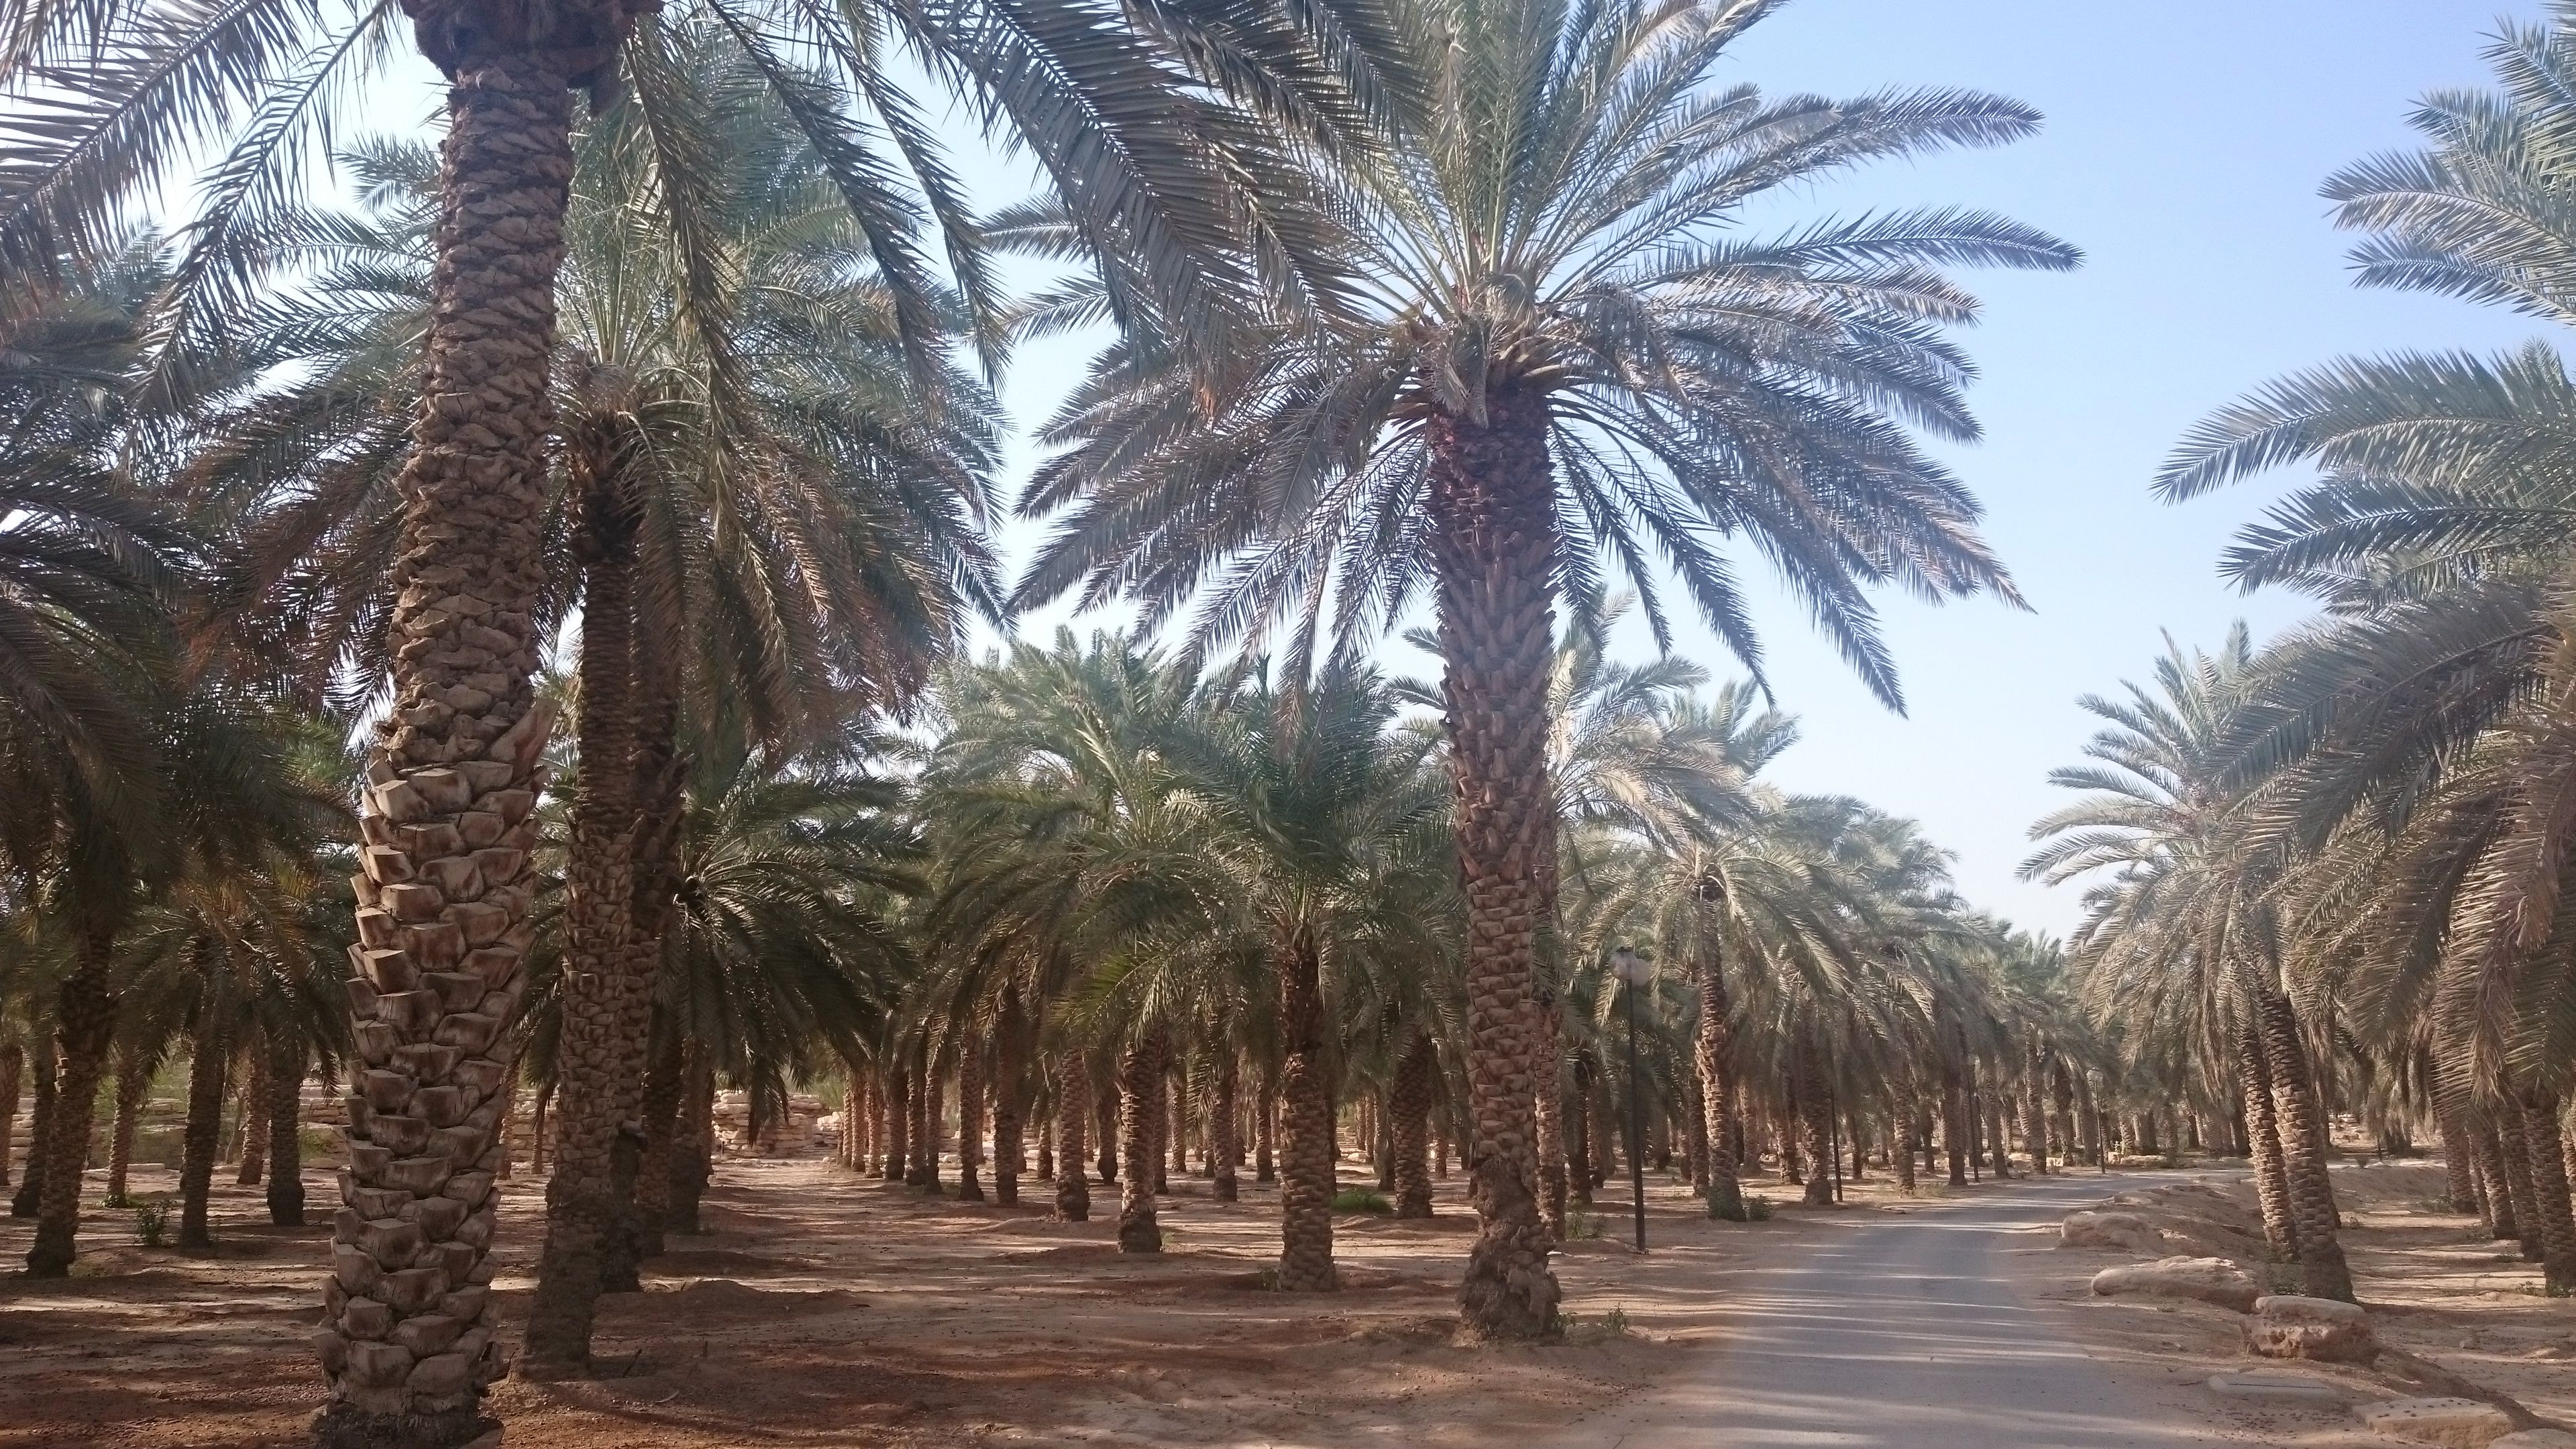 A date palm orchard on the Diplomatic Quarter